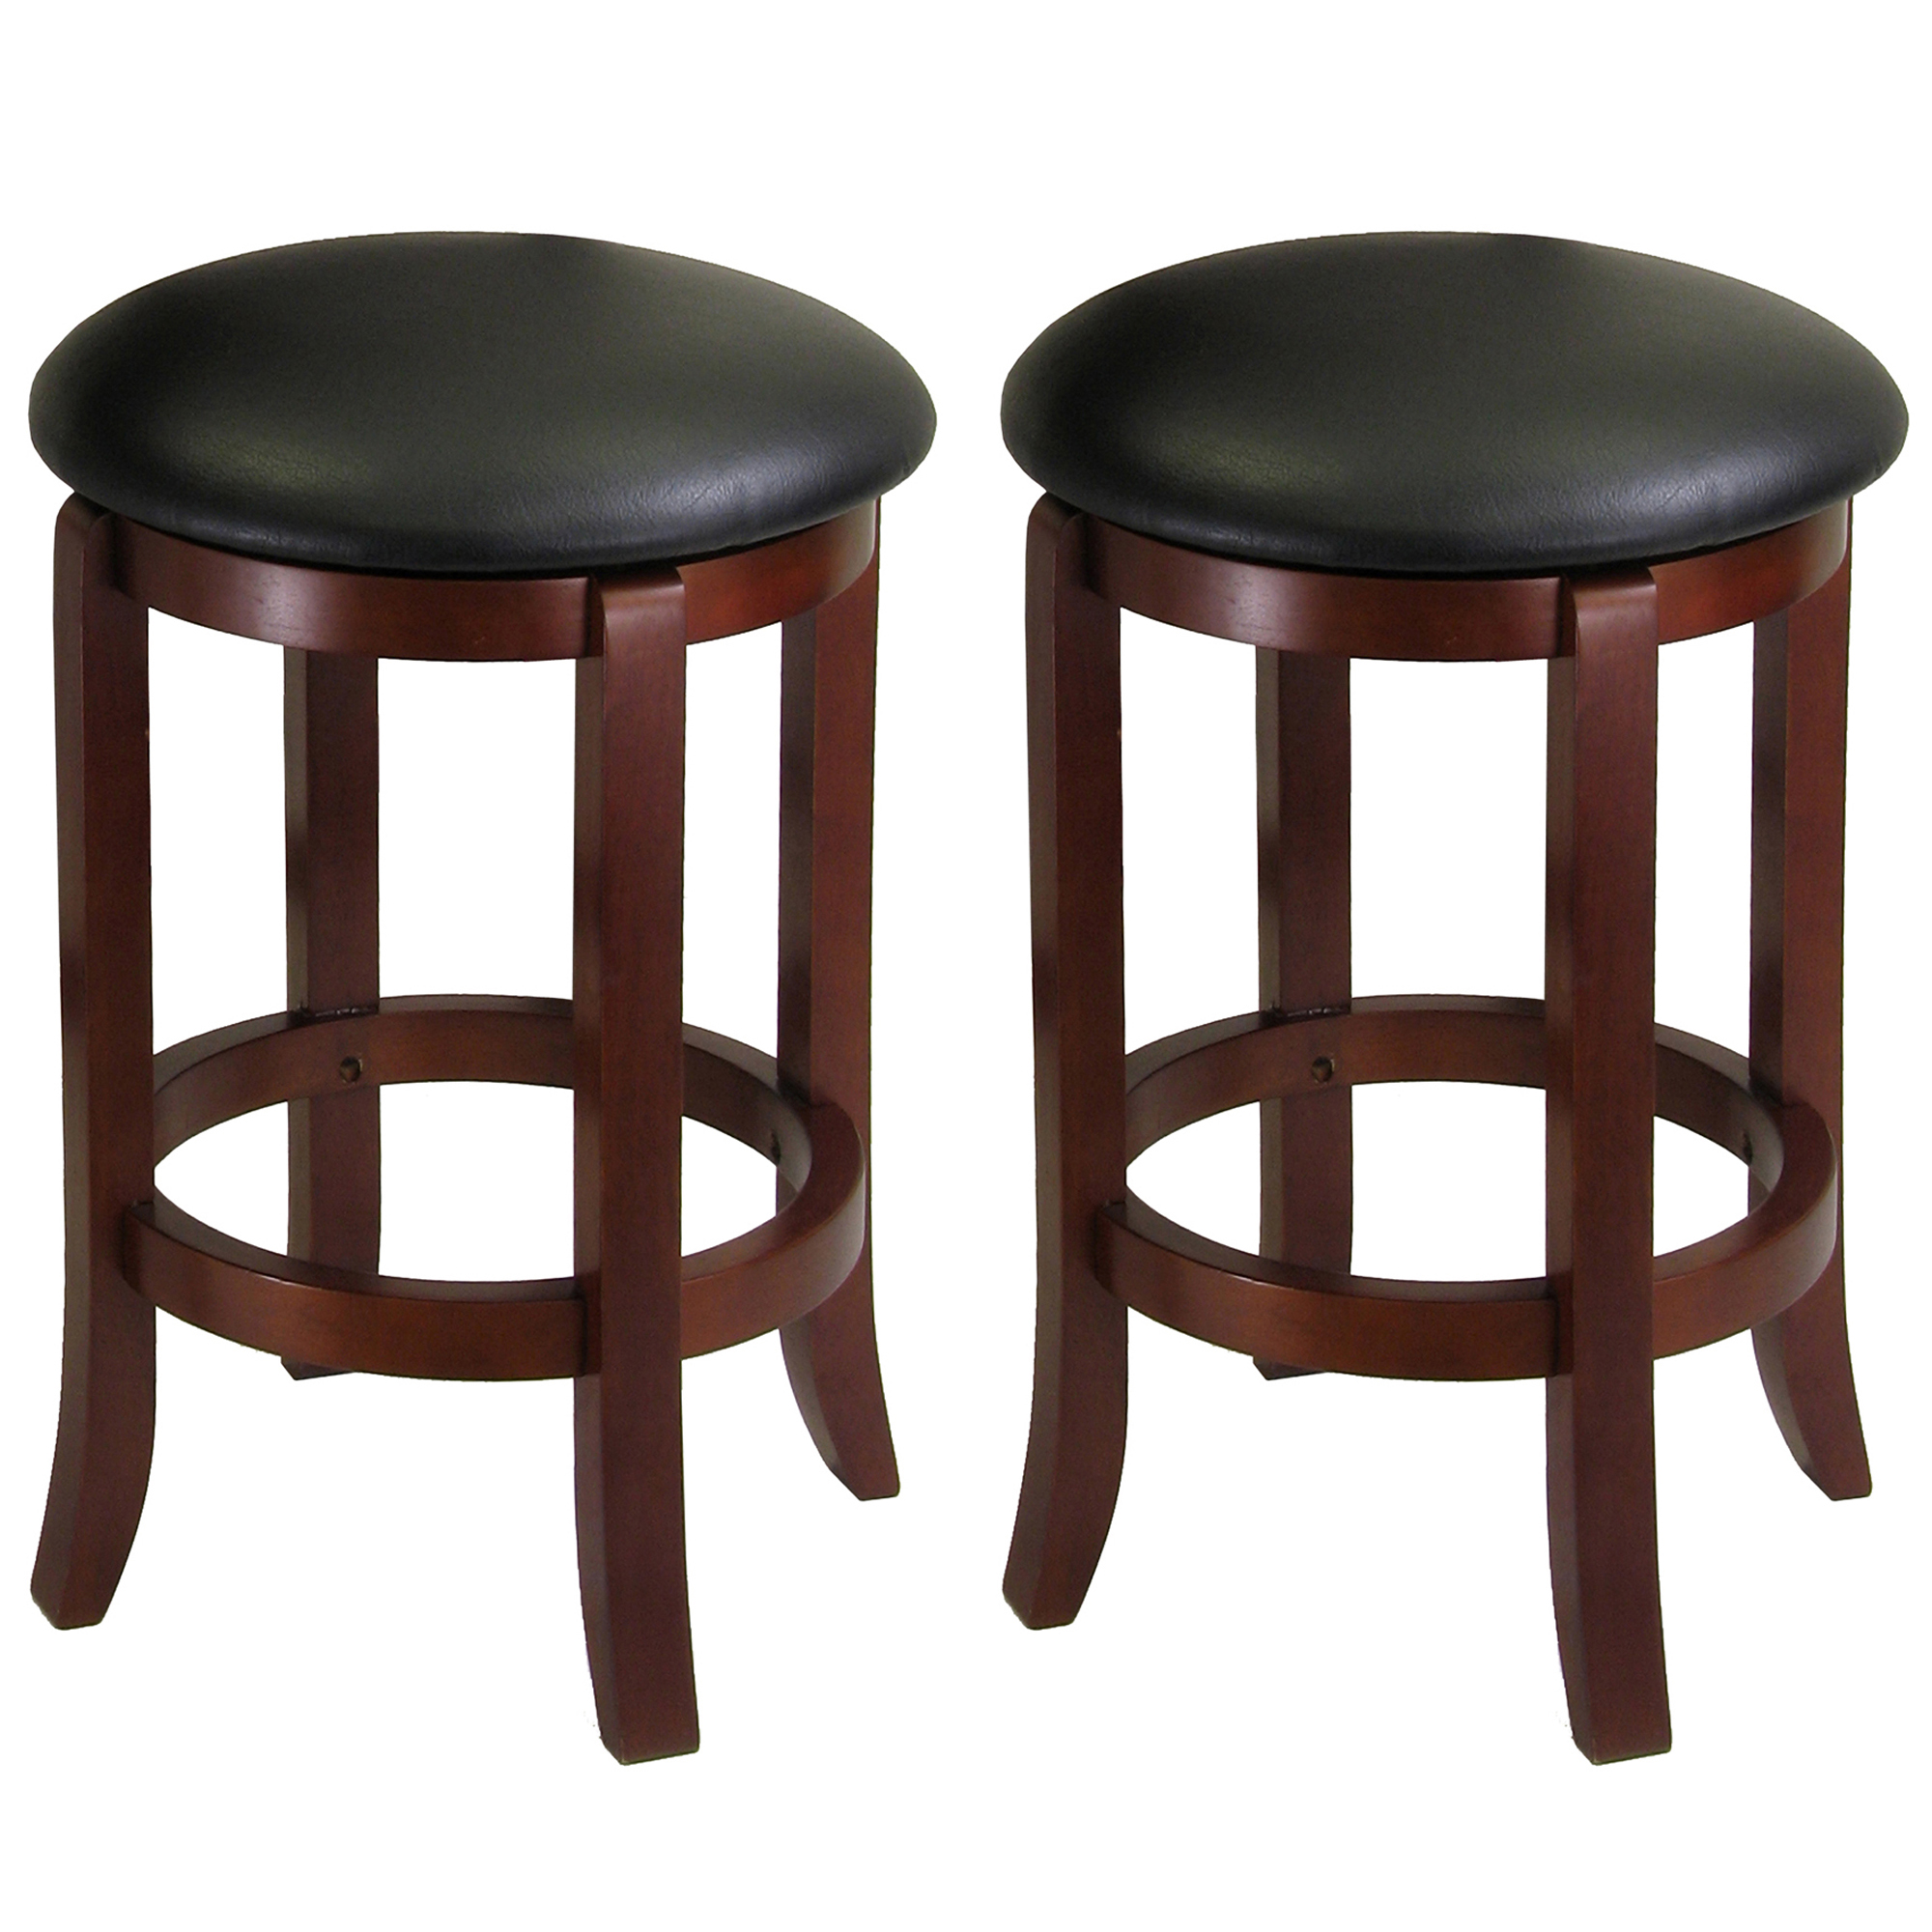 "Winsome Wood Walcott 24"" Swivel Seat Counter Stool, Set of 2, Walnut"